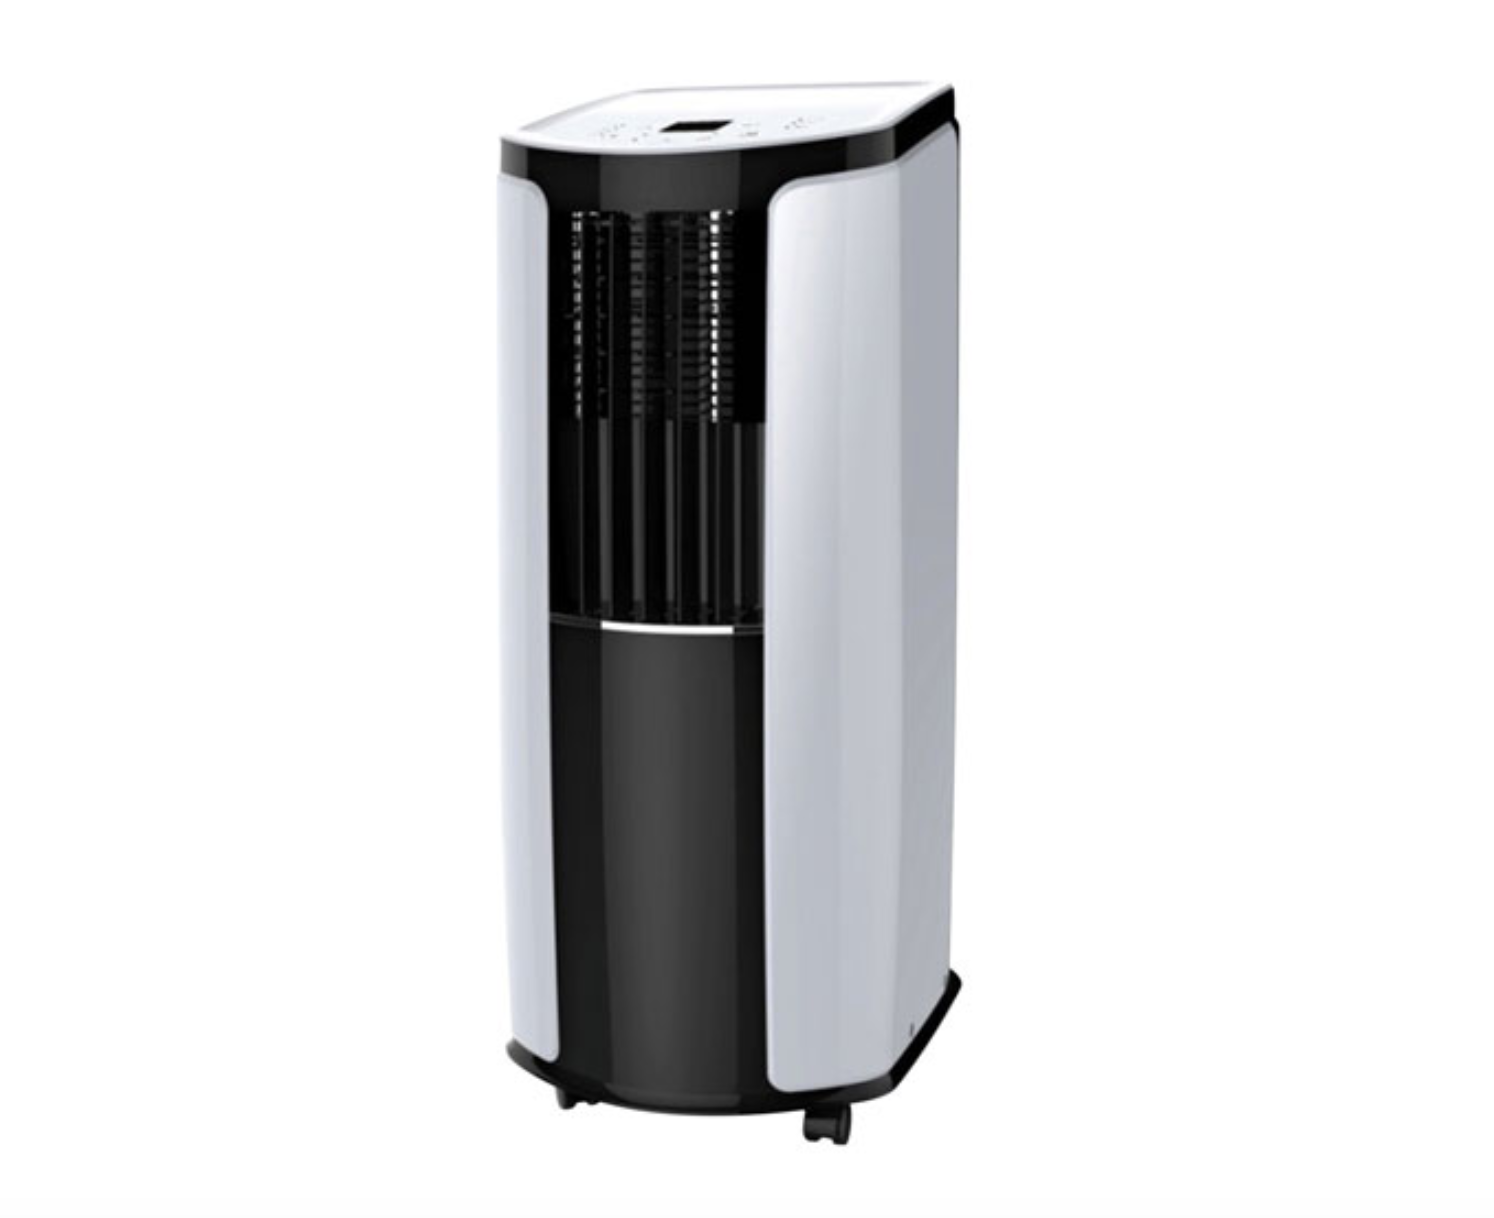 image of the Toscot Portable Air Conditioner